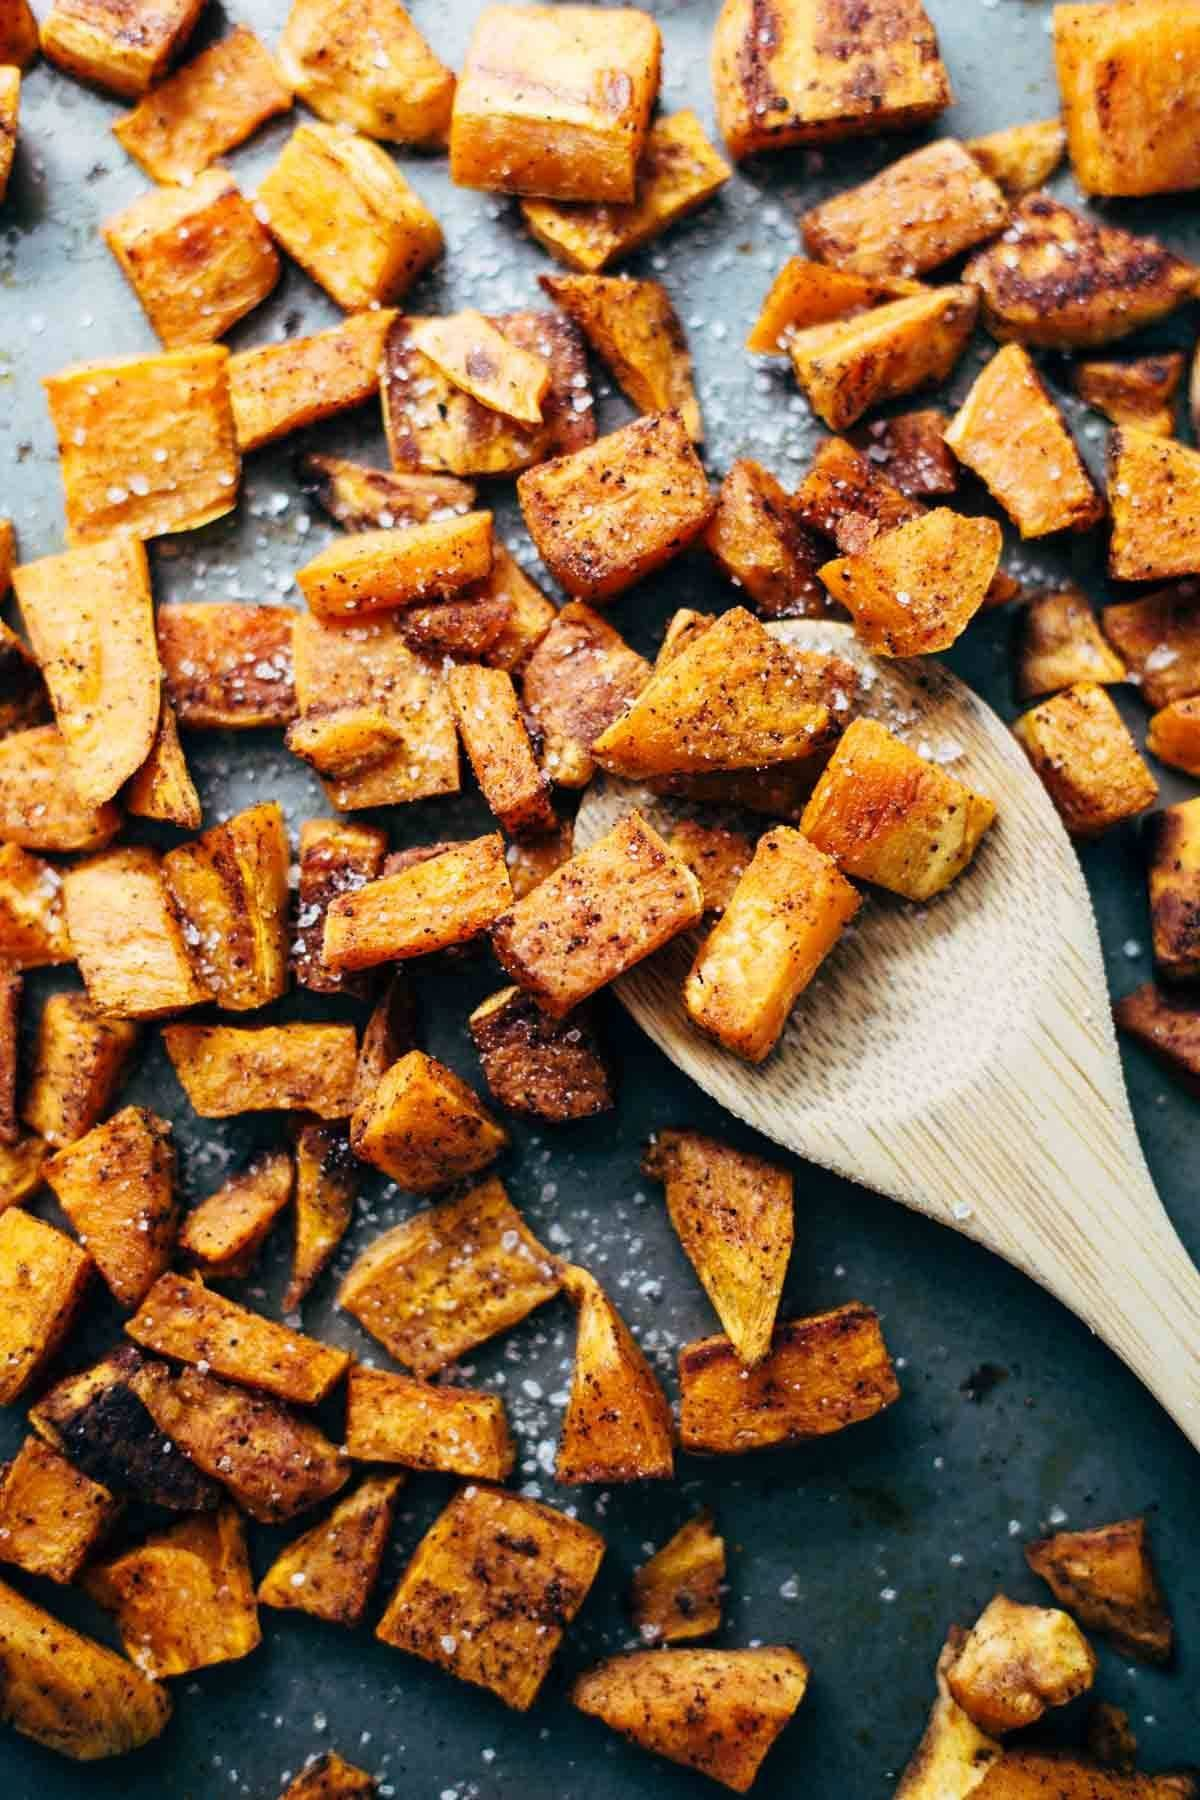 Roasted sweet potatoes on a wooden spoon.